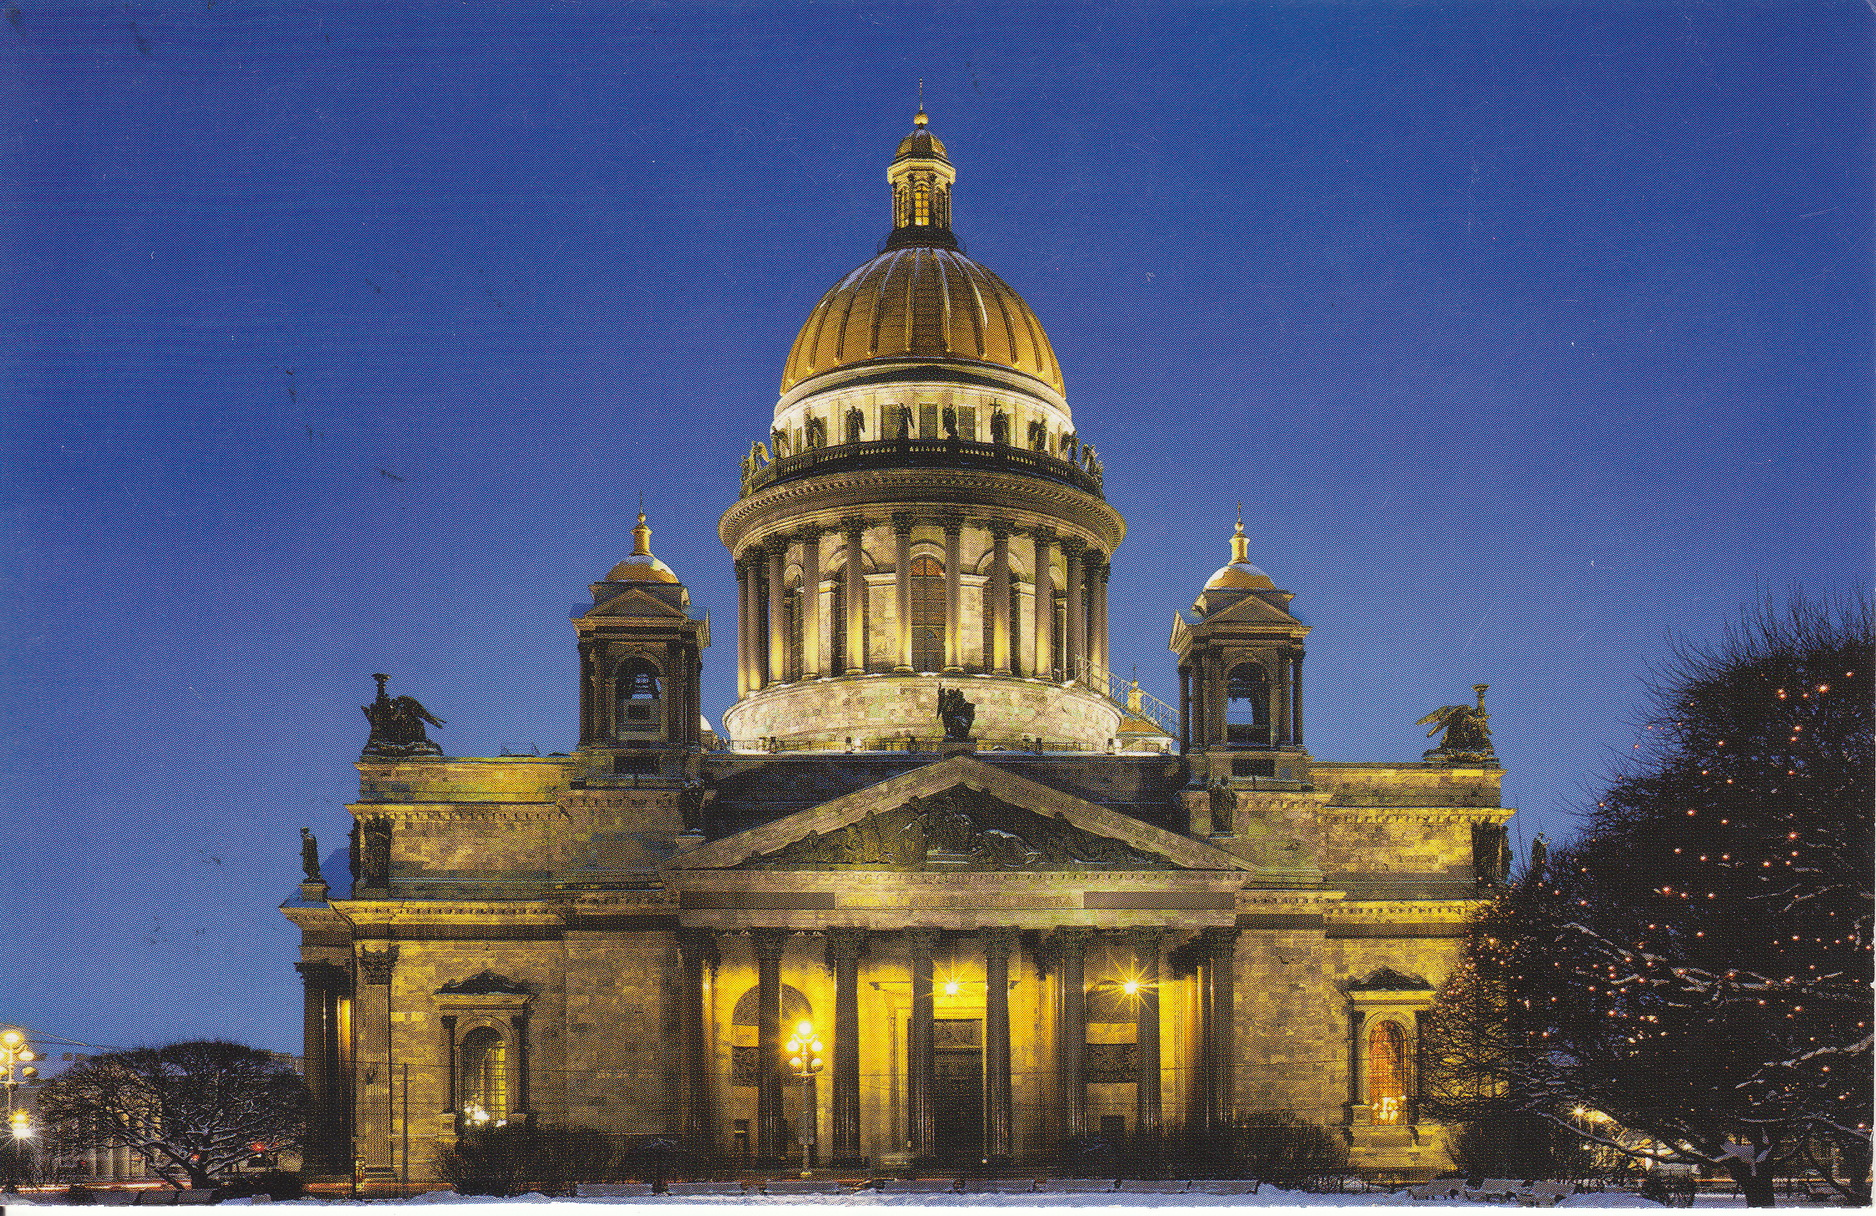 St Isaac's Cathedral St Petersburg, Saint Isaac's Cathedral in St. Petersburg – My collection of ...